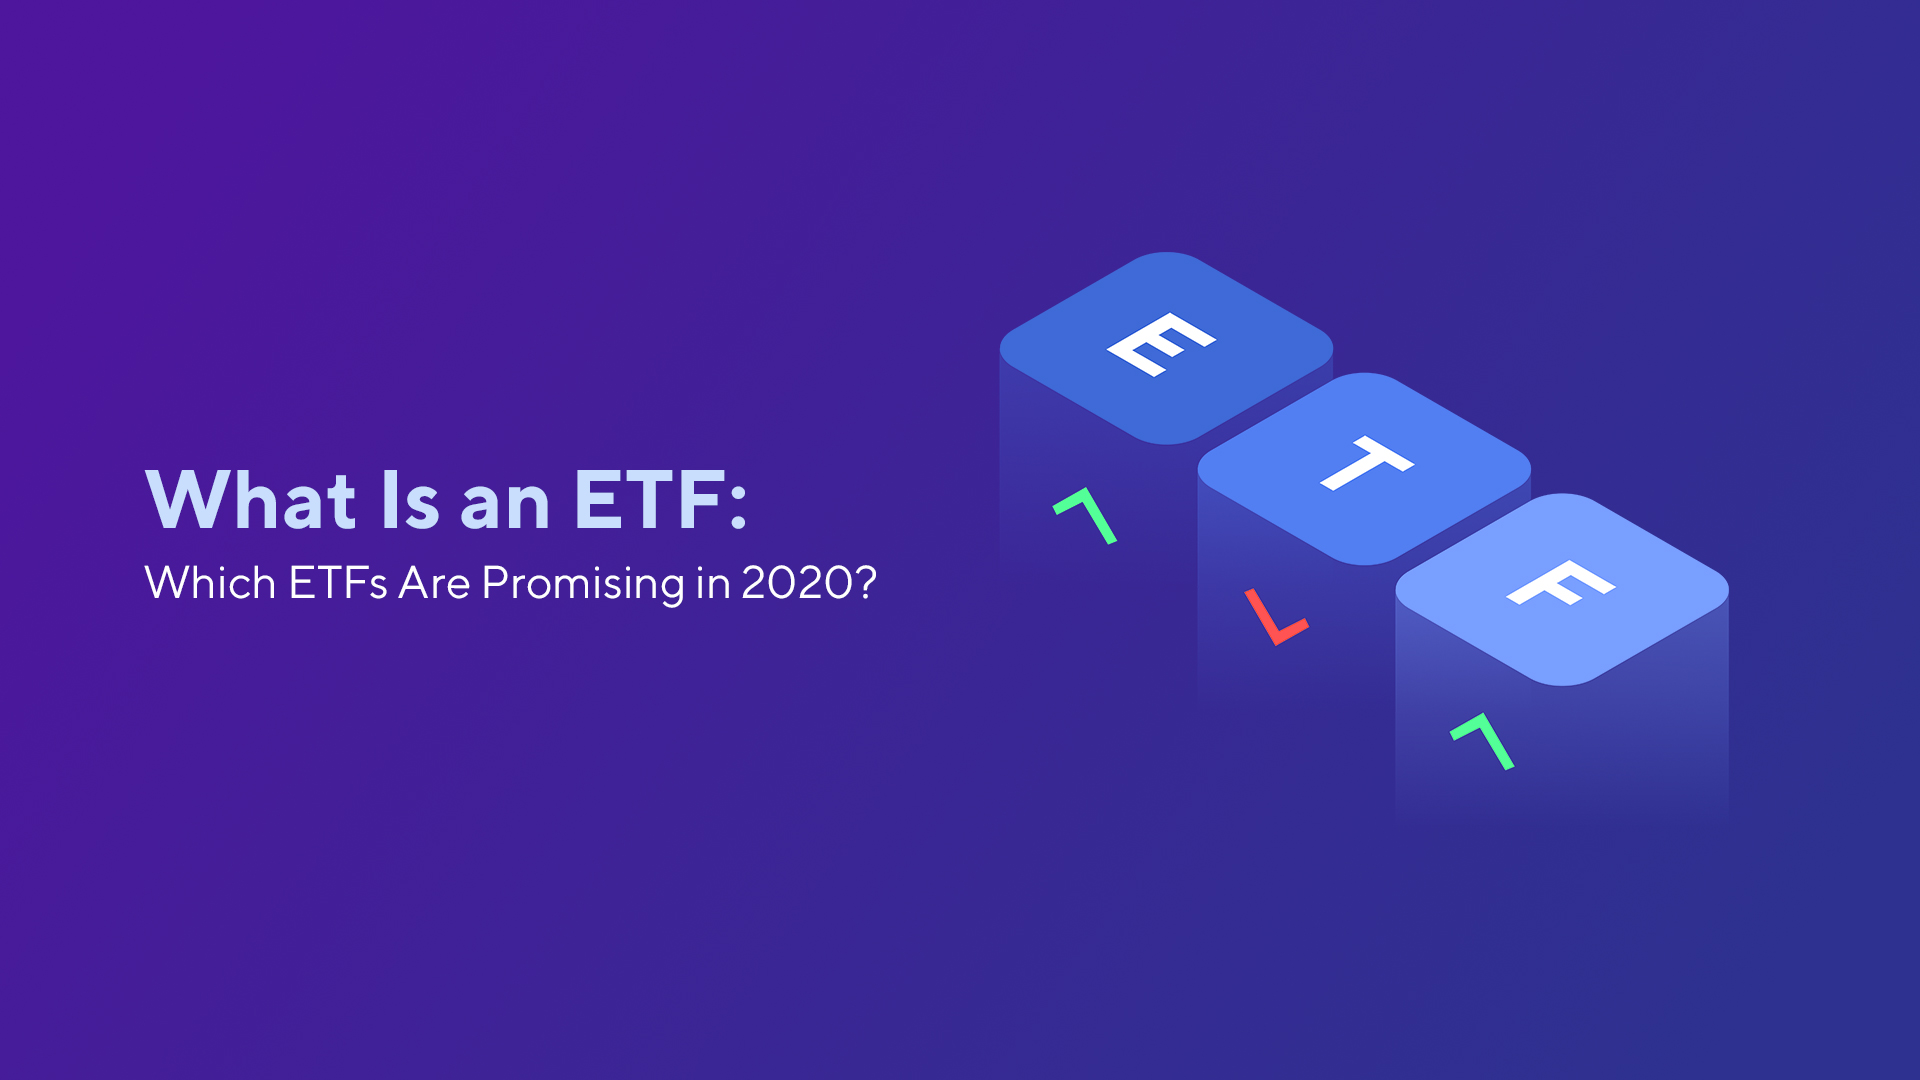 What Is an ETF: Which ETFs Are Promising in 2020?